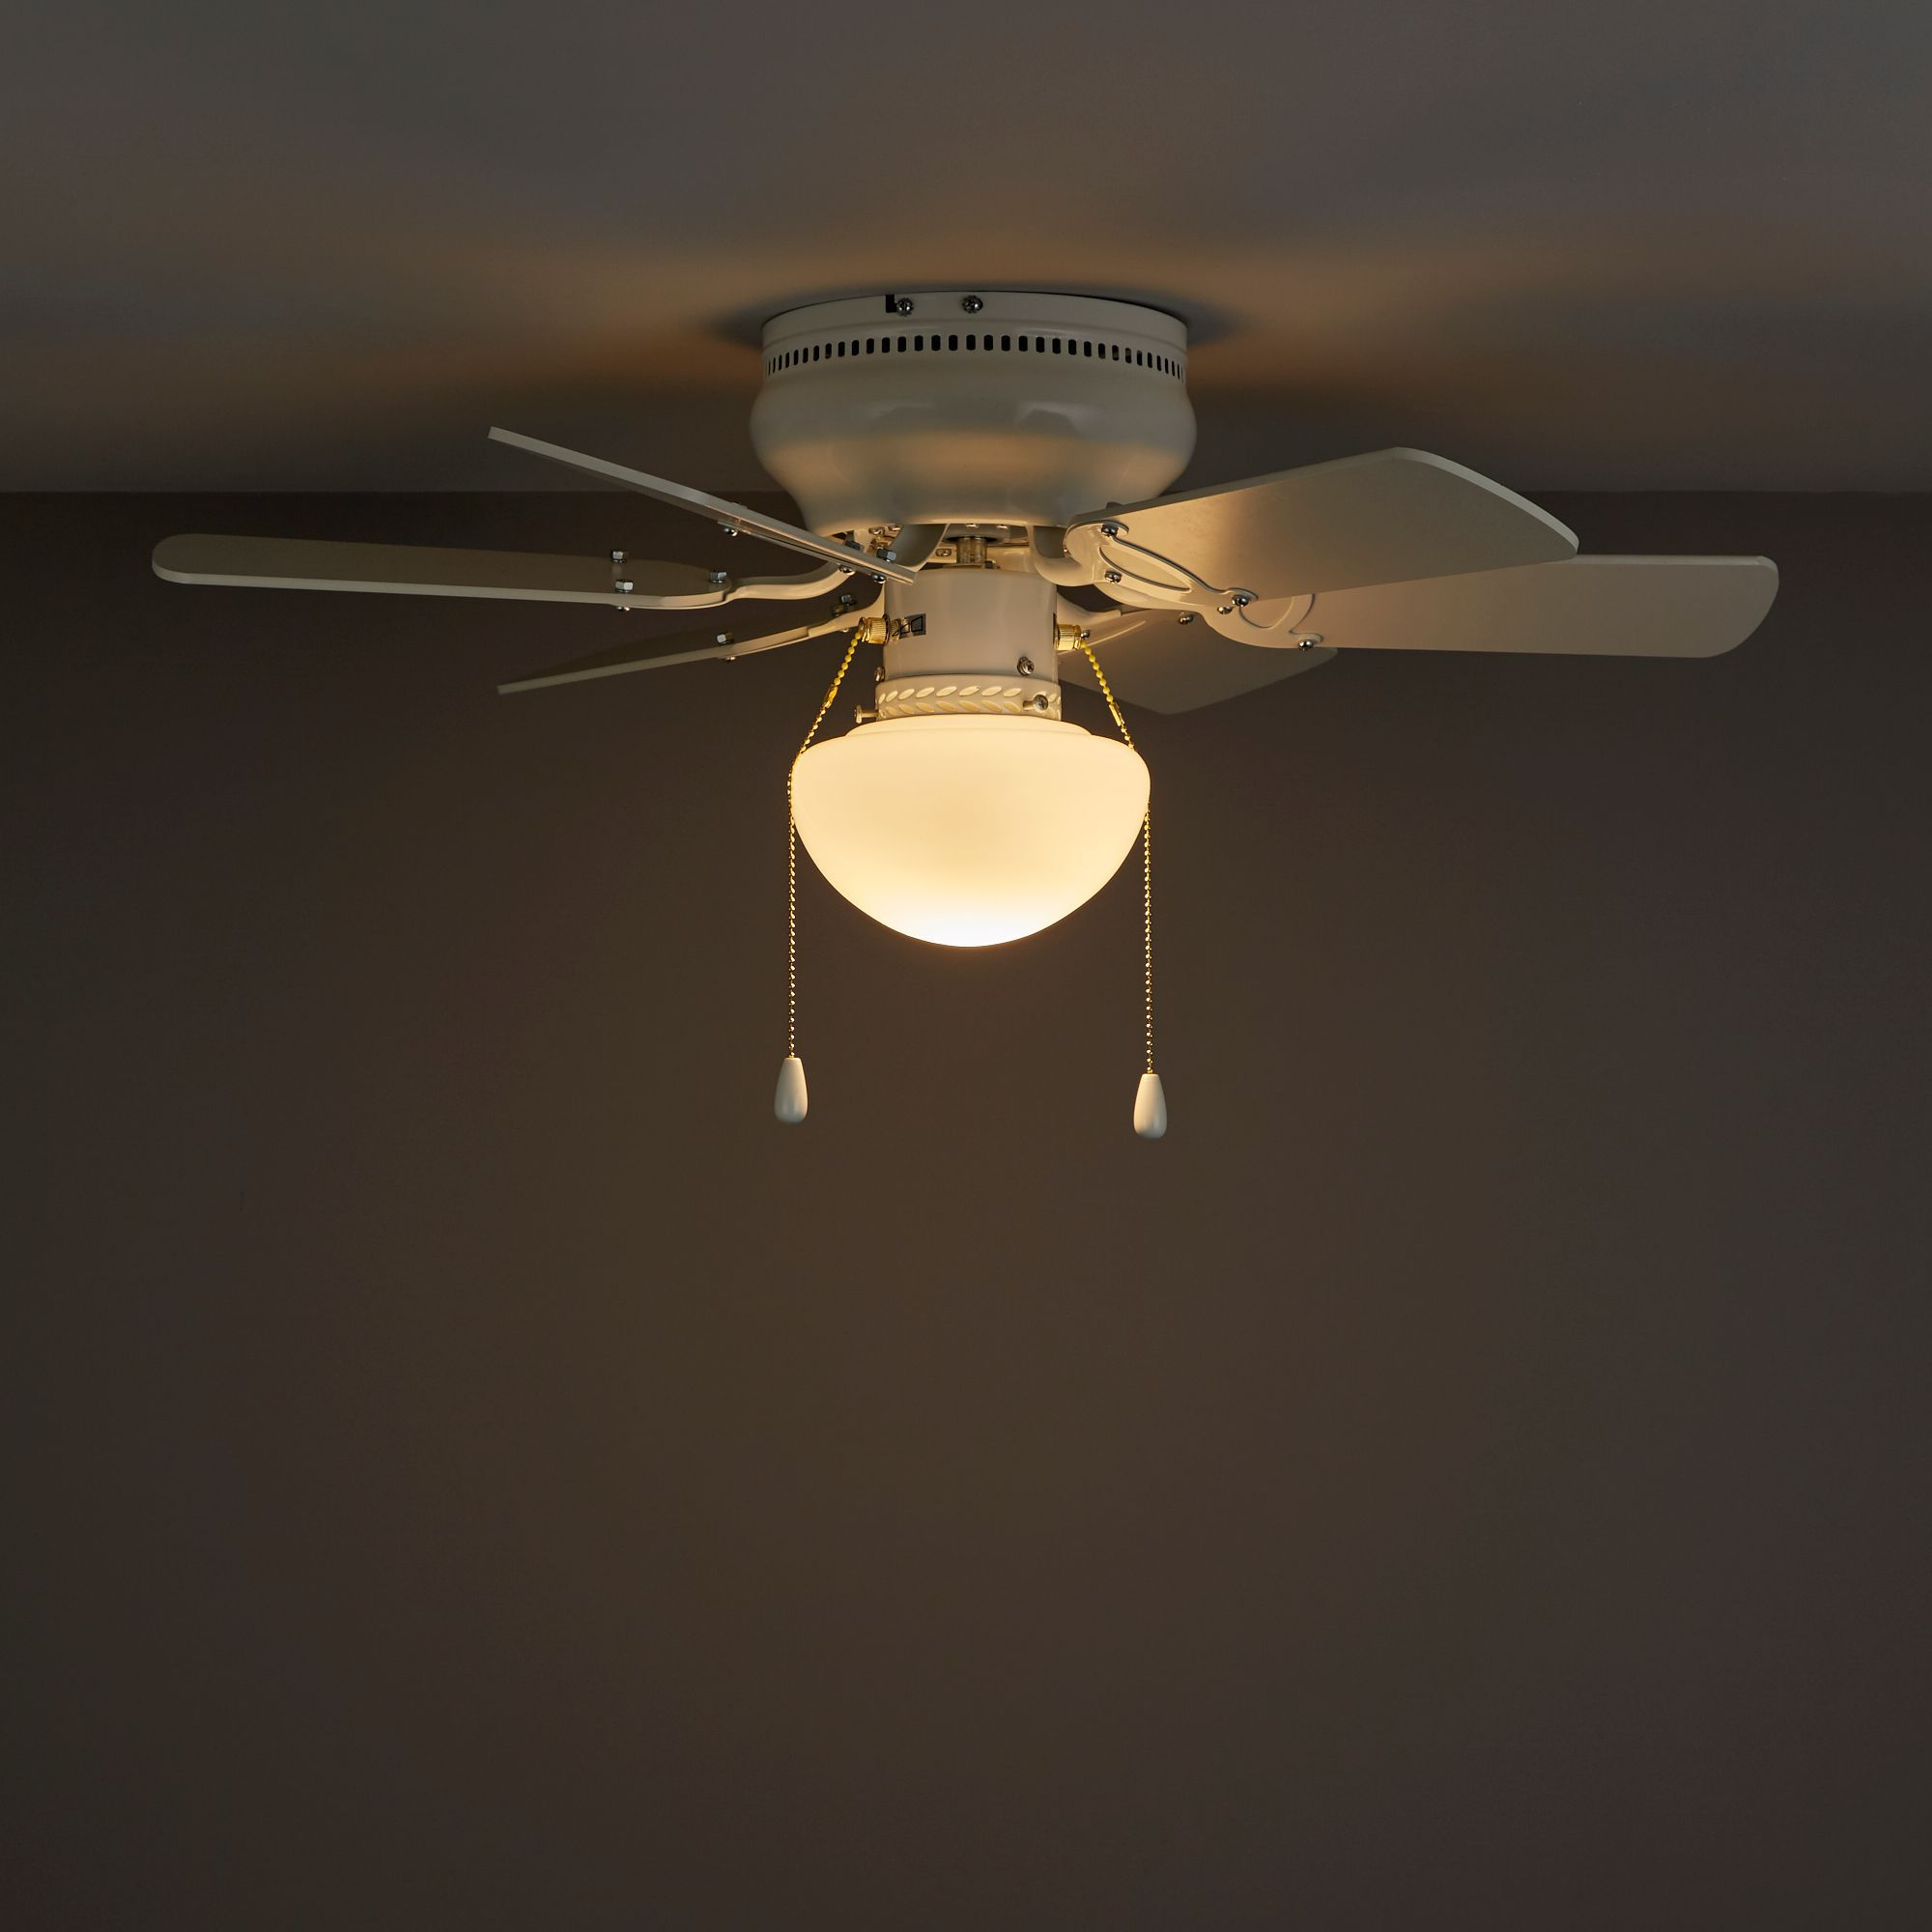 Twister White Ceiling Fan Light Departments Tradepoint